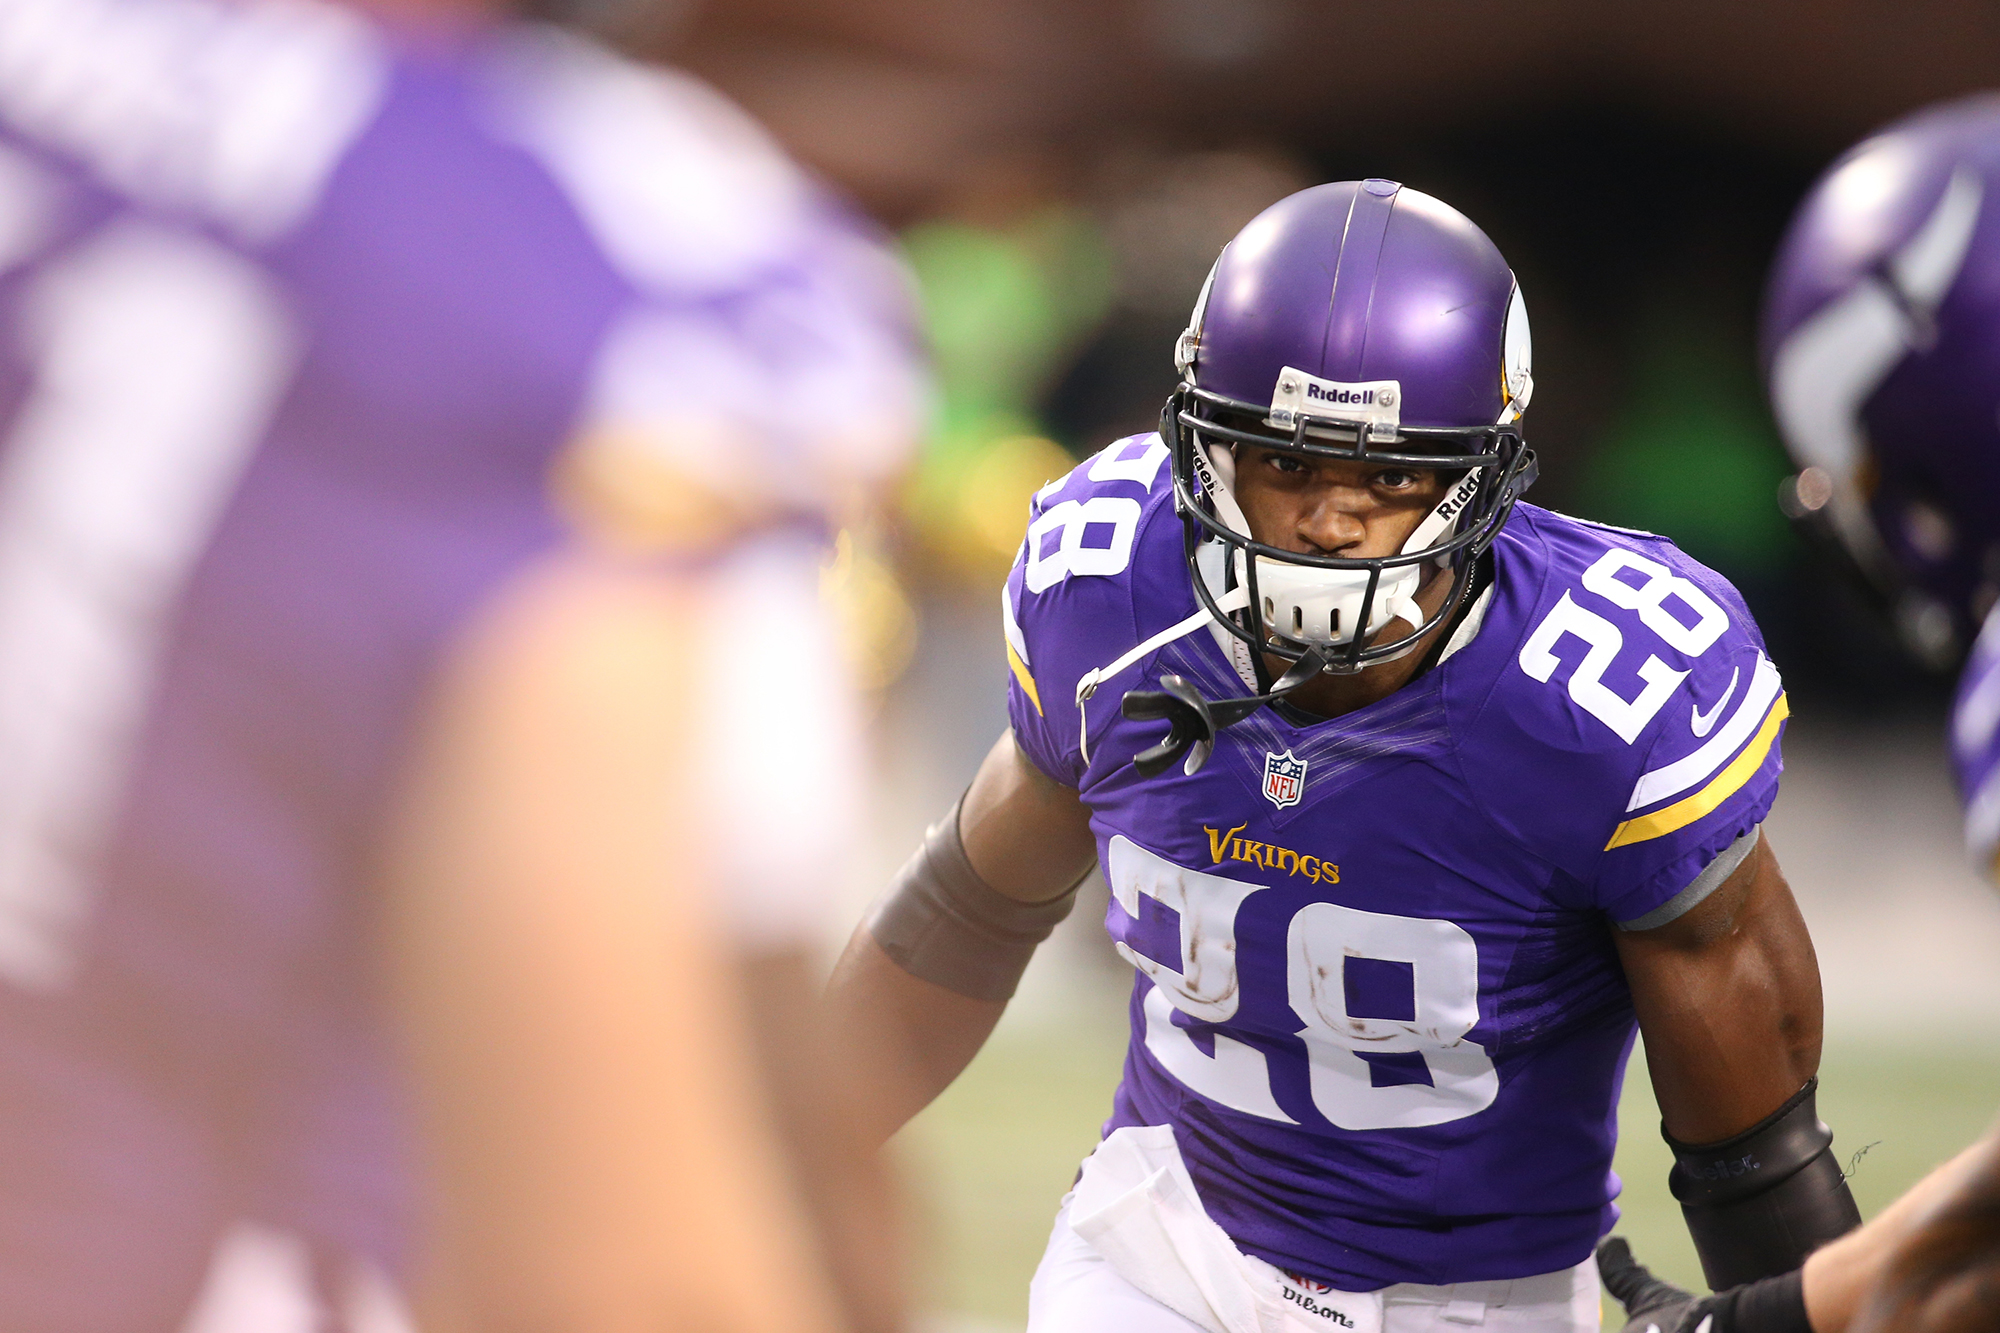 Ray rice adrian peterson prompts corporate sponsor pushback us news